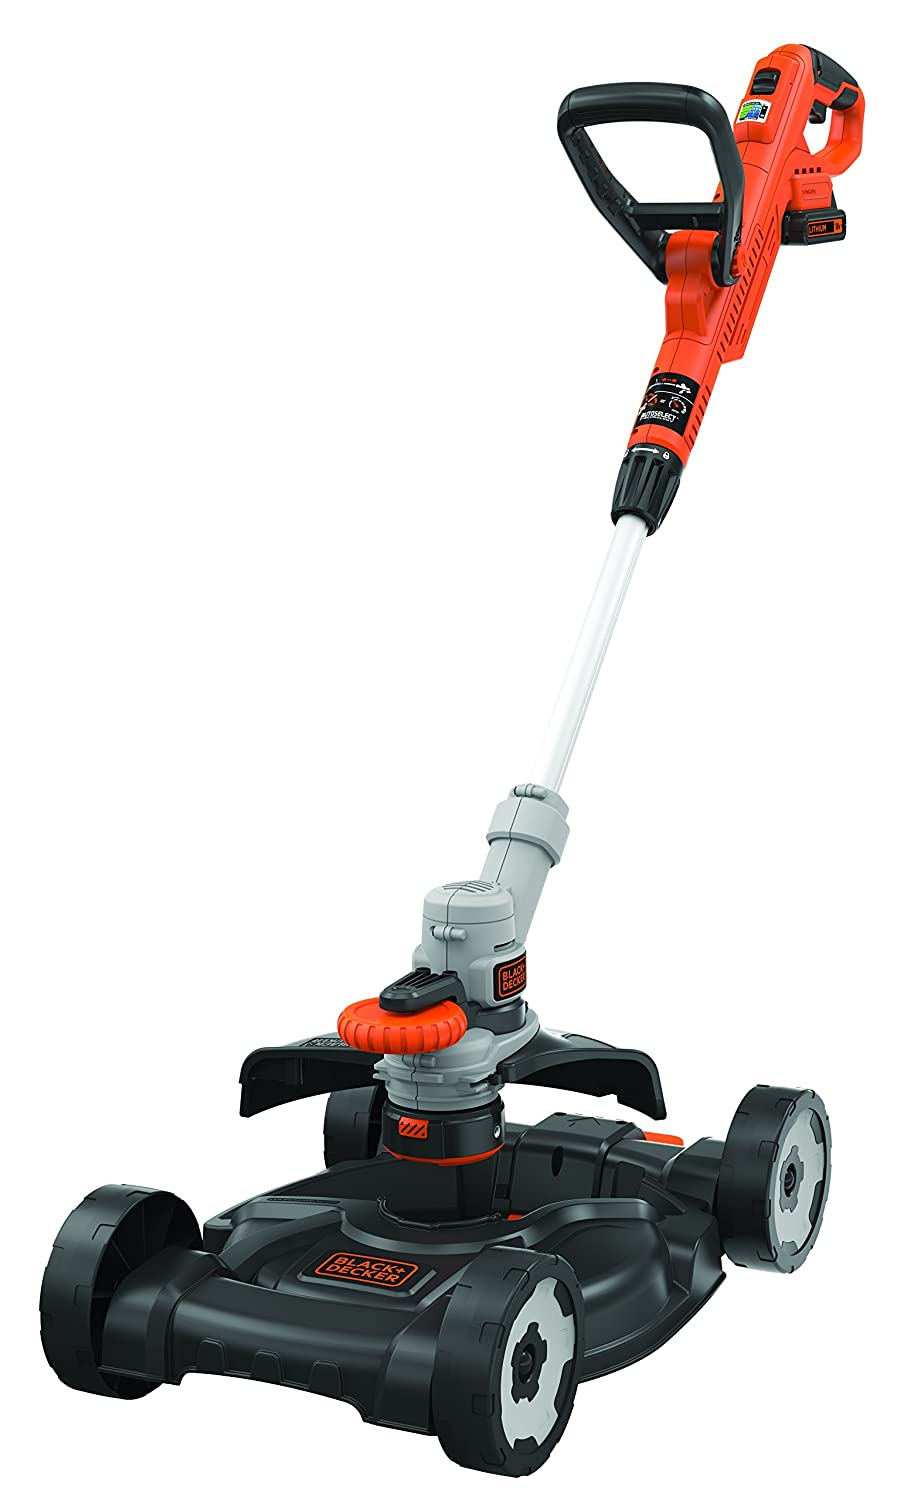 Black + Decker 18 V 3-in-1 Multi-Trimmer